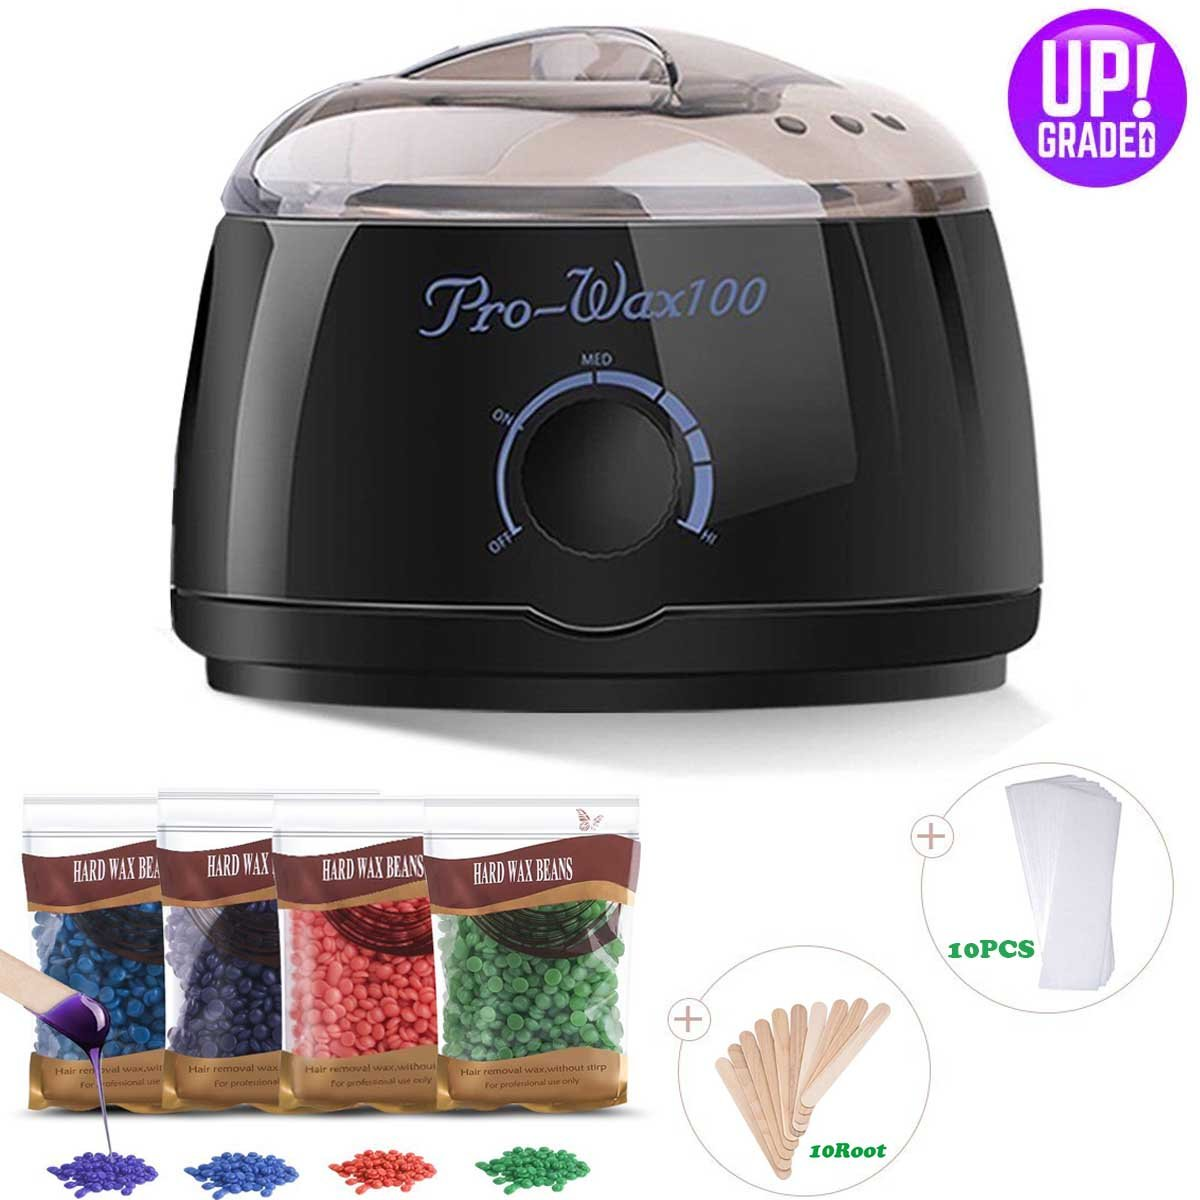 Wax Warmer Professional Electric At Home Waxing Kit for Hair Removal with 4 Scents Hard Wax Beans and 10 Wax Applicator Sticks